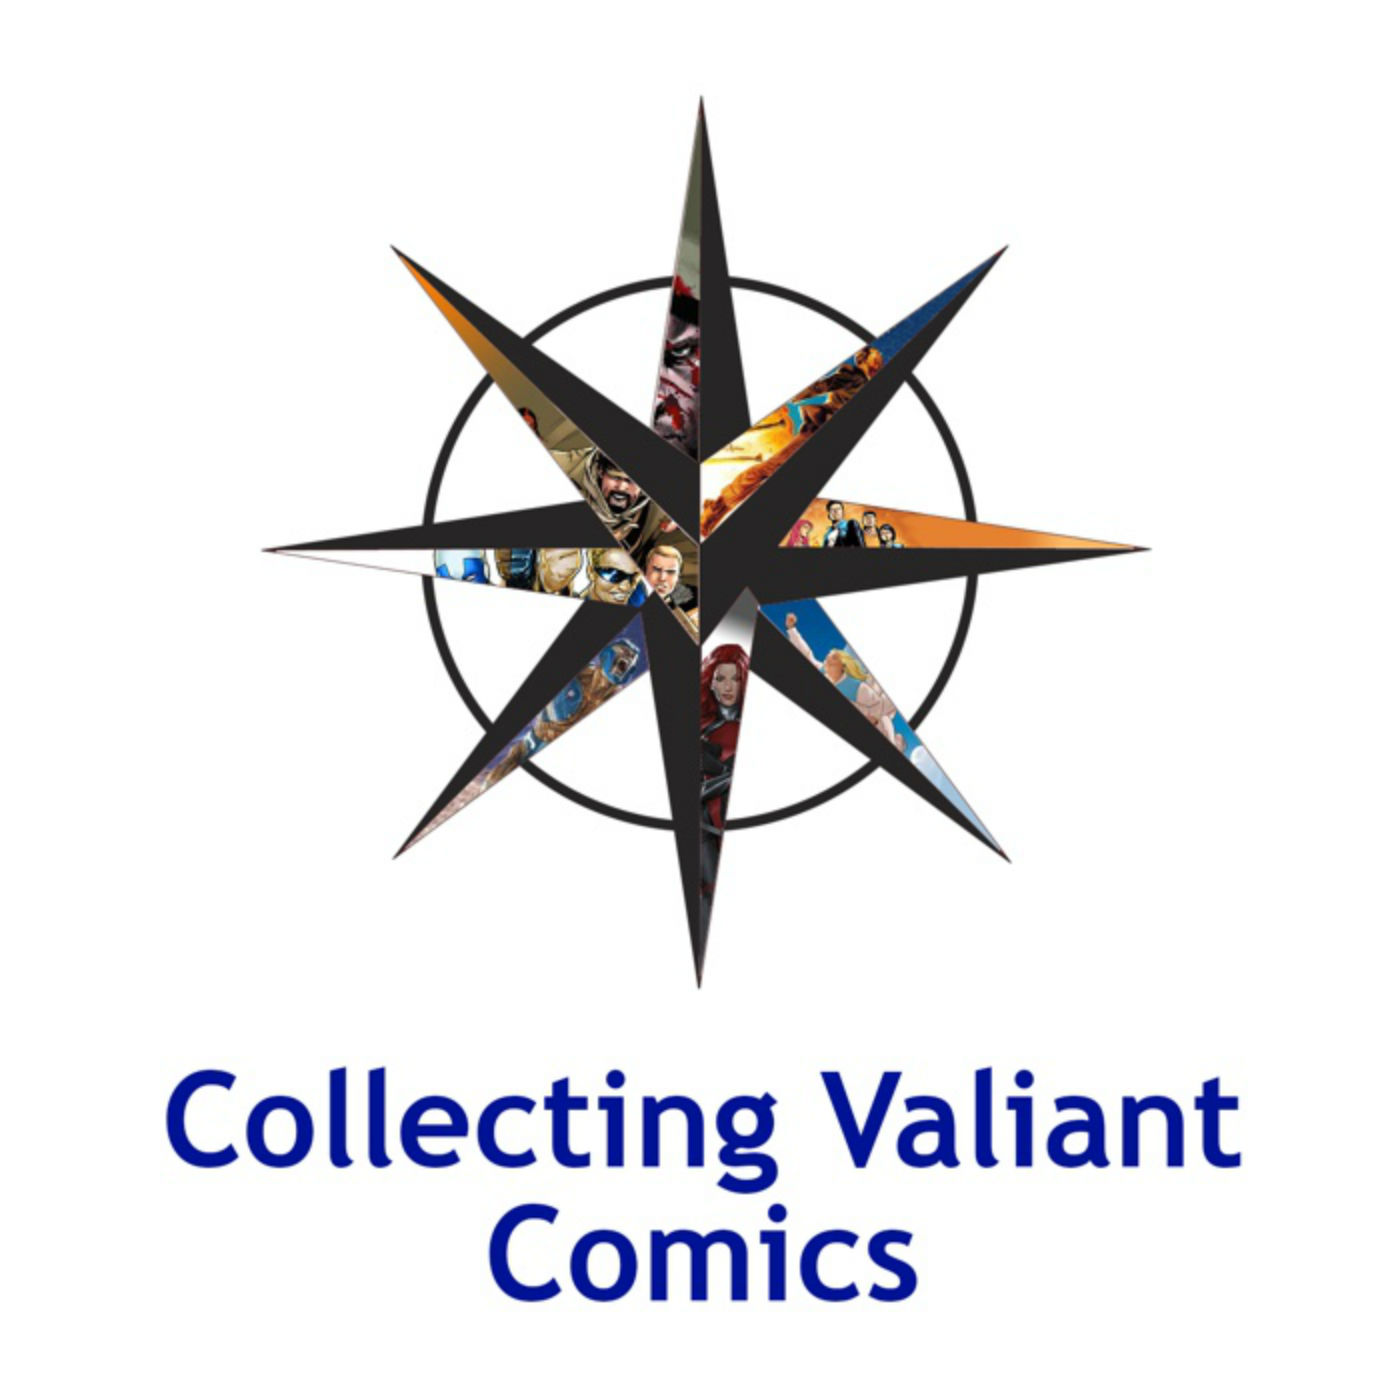 Collecting Valiant